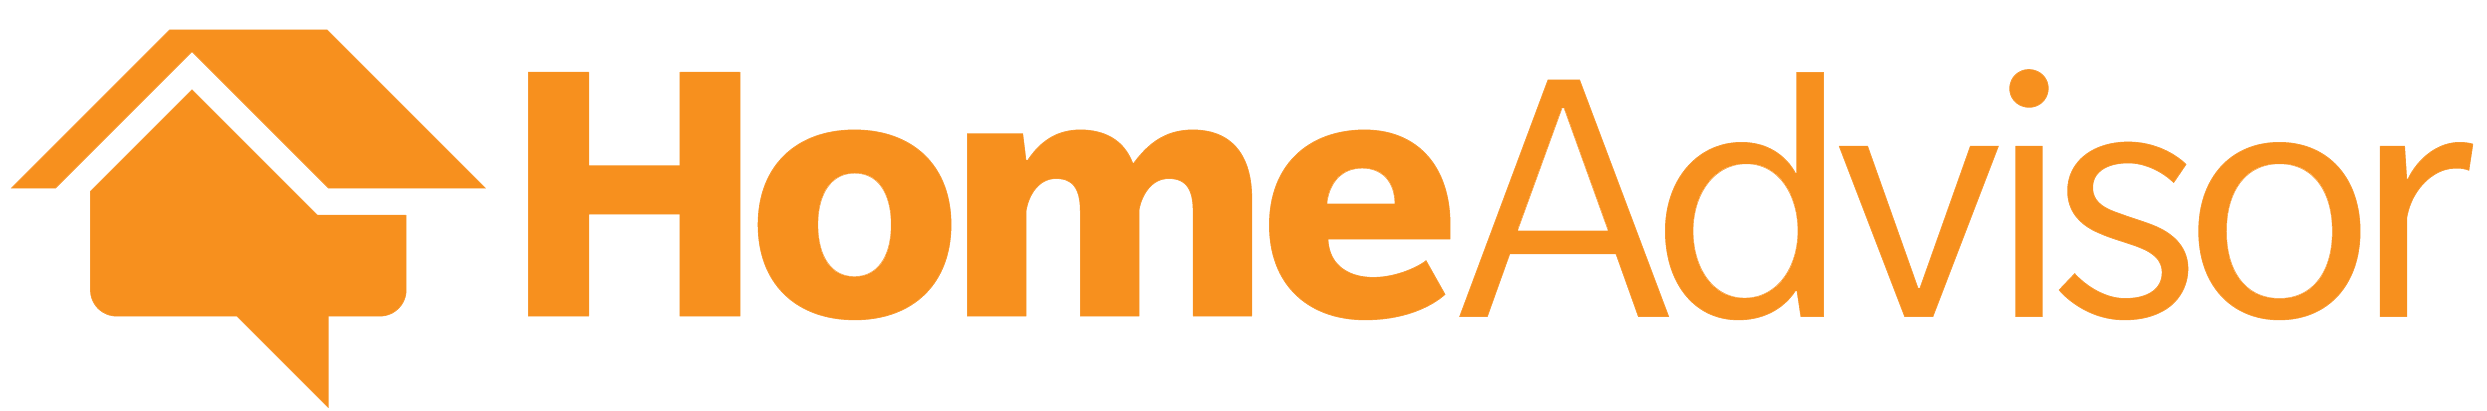 Homeadvisor Logo Png, png collections at sccpre.cat.